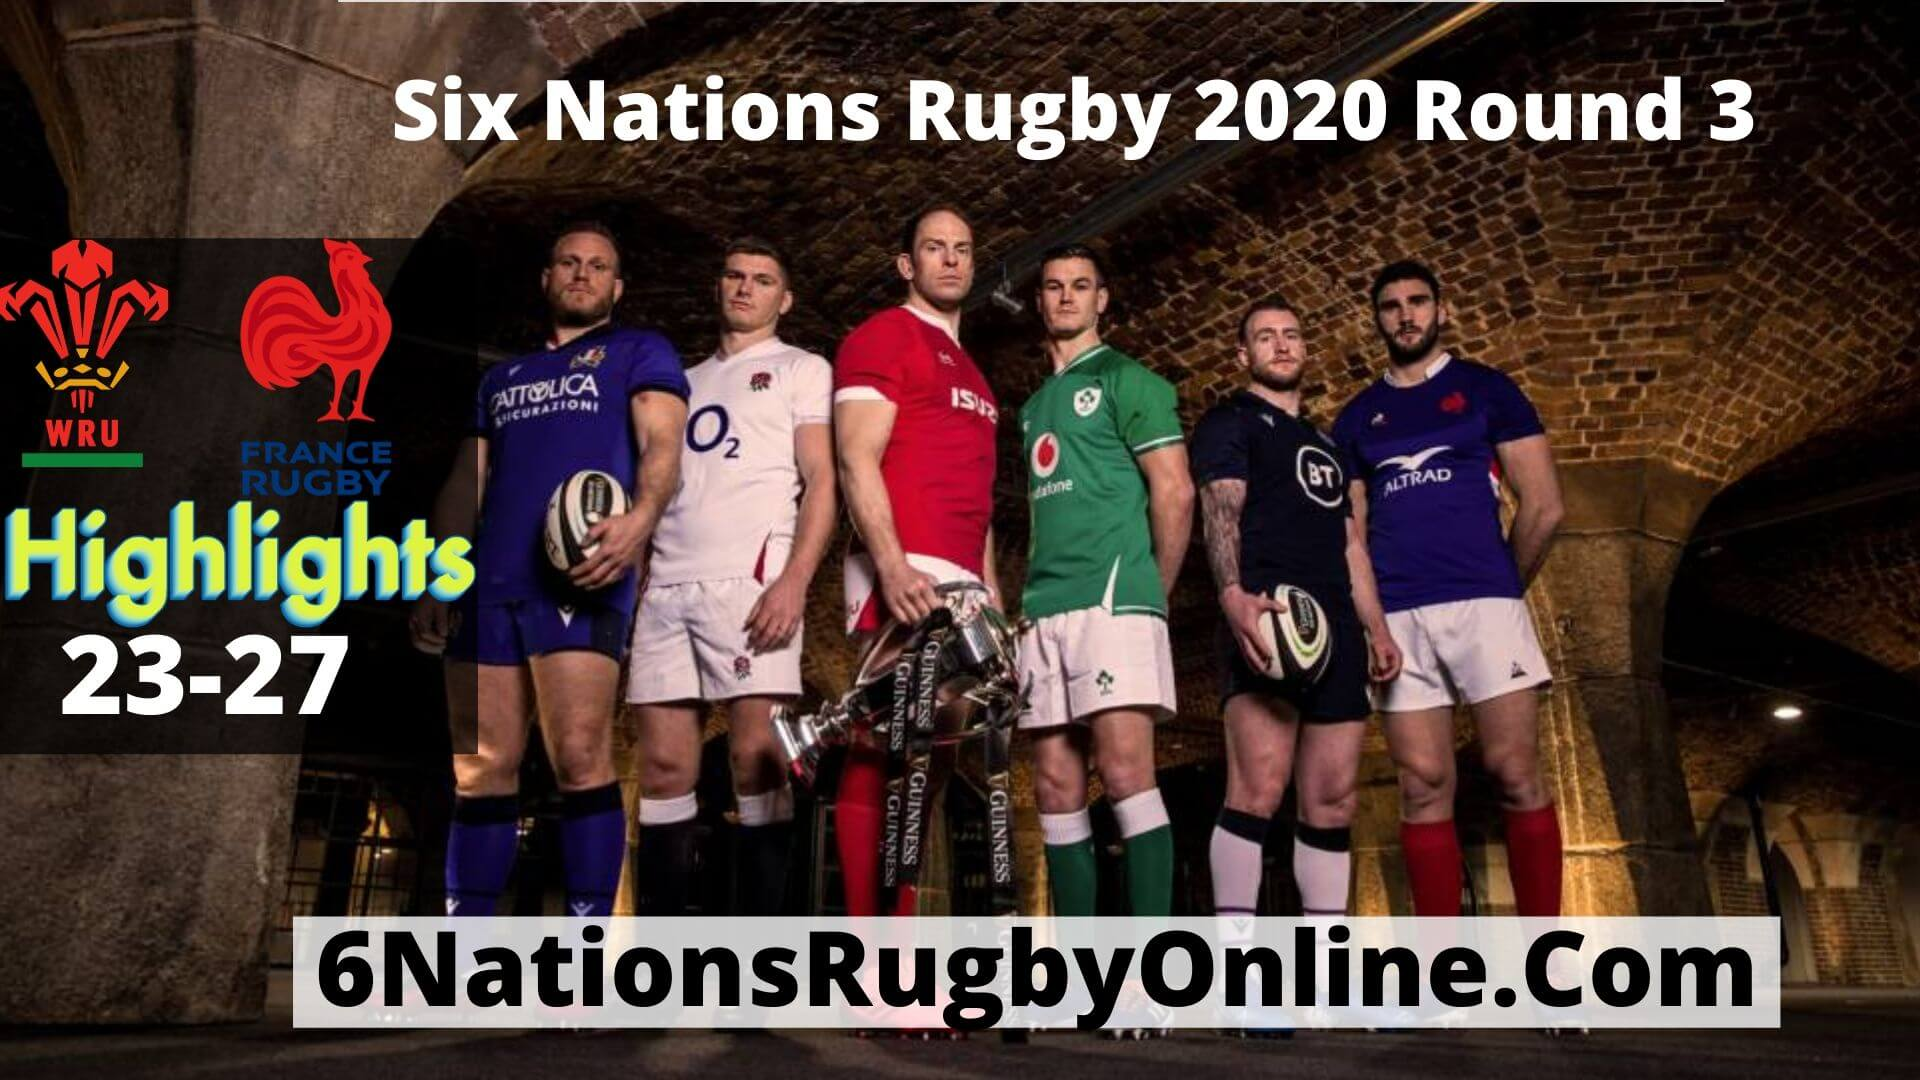 Wales Vs France Highlights 2020 Rd 3 Six Nations Rugby